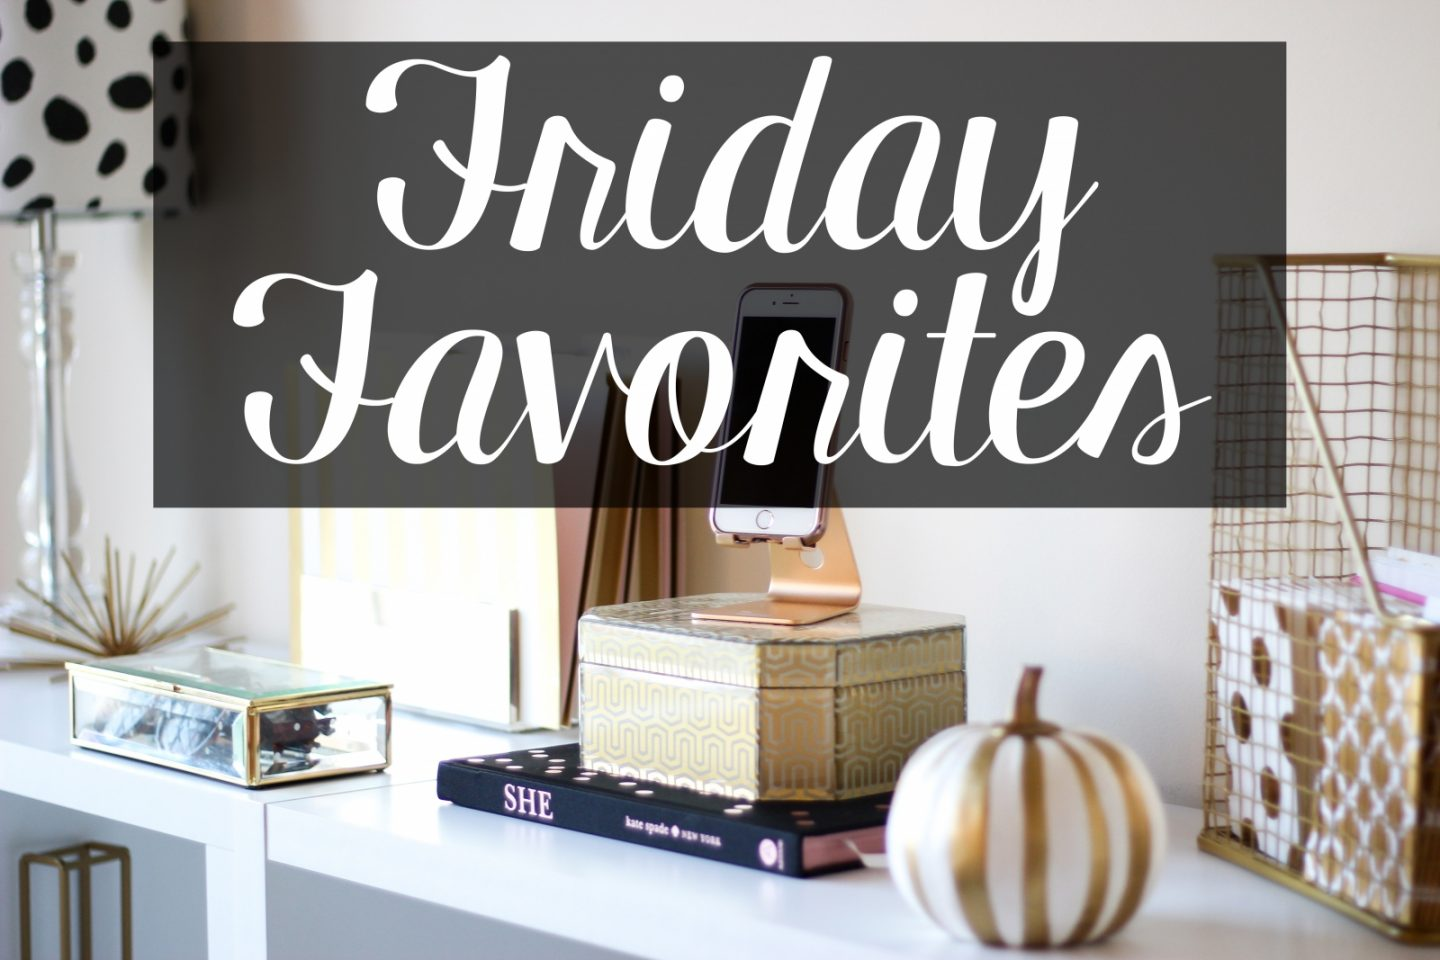 5 Friday Favorites by Washington DC style blogger Styled Blonde